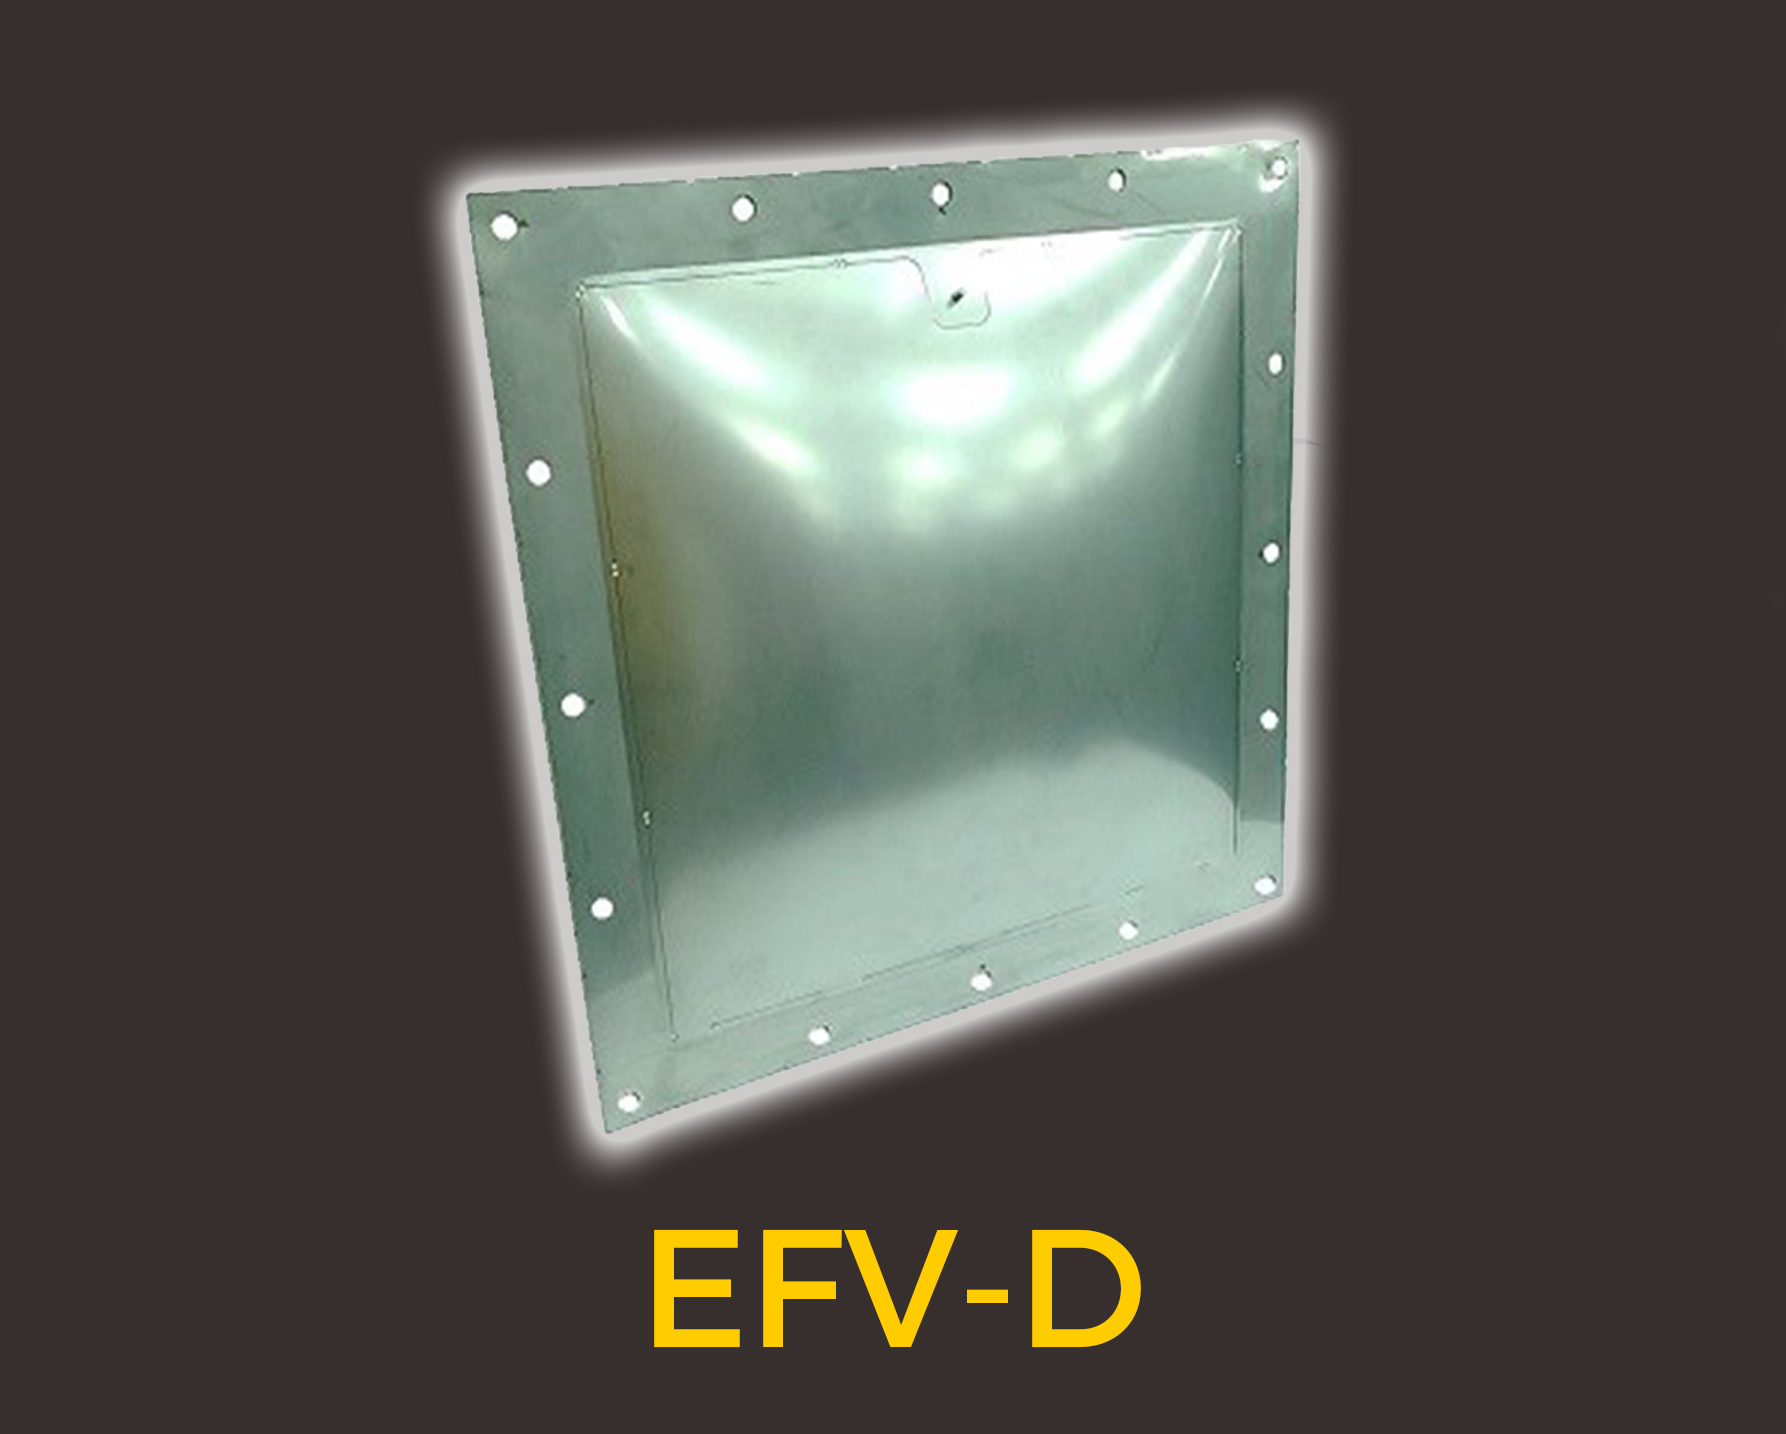 efv-d from euratex - explosion vents for dust collectors